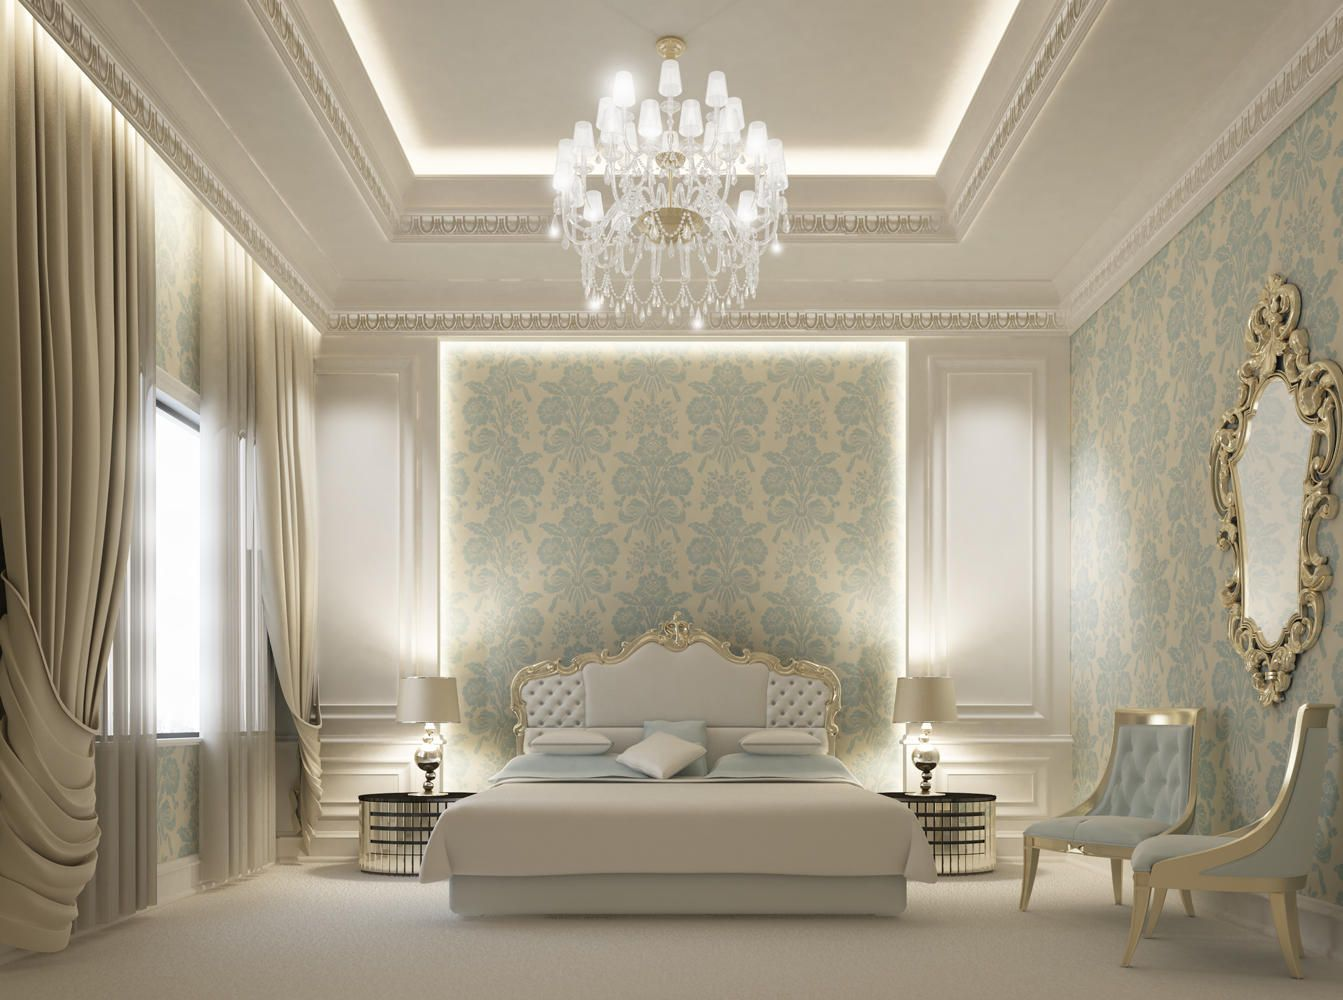 Interior design companies luxury interior design palace interior - Classy Blue And White Dream Home Ideas Pinterest Classy Bedrooms And Neoclassical Interior